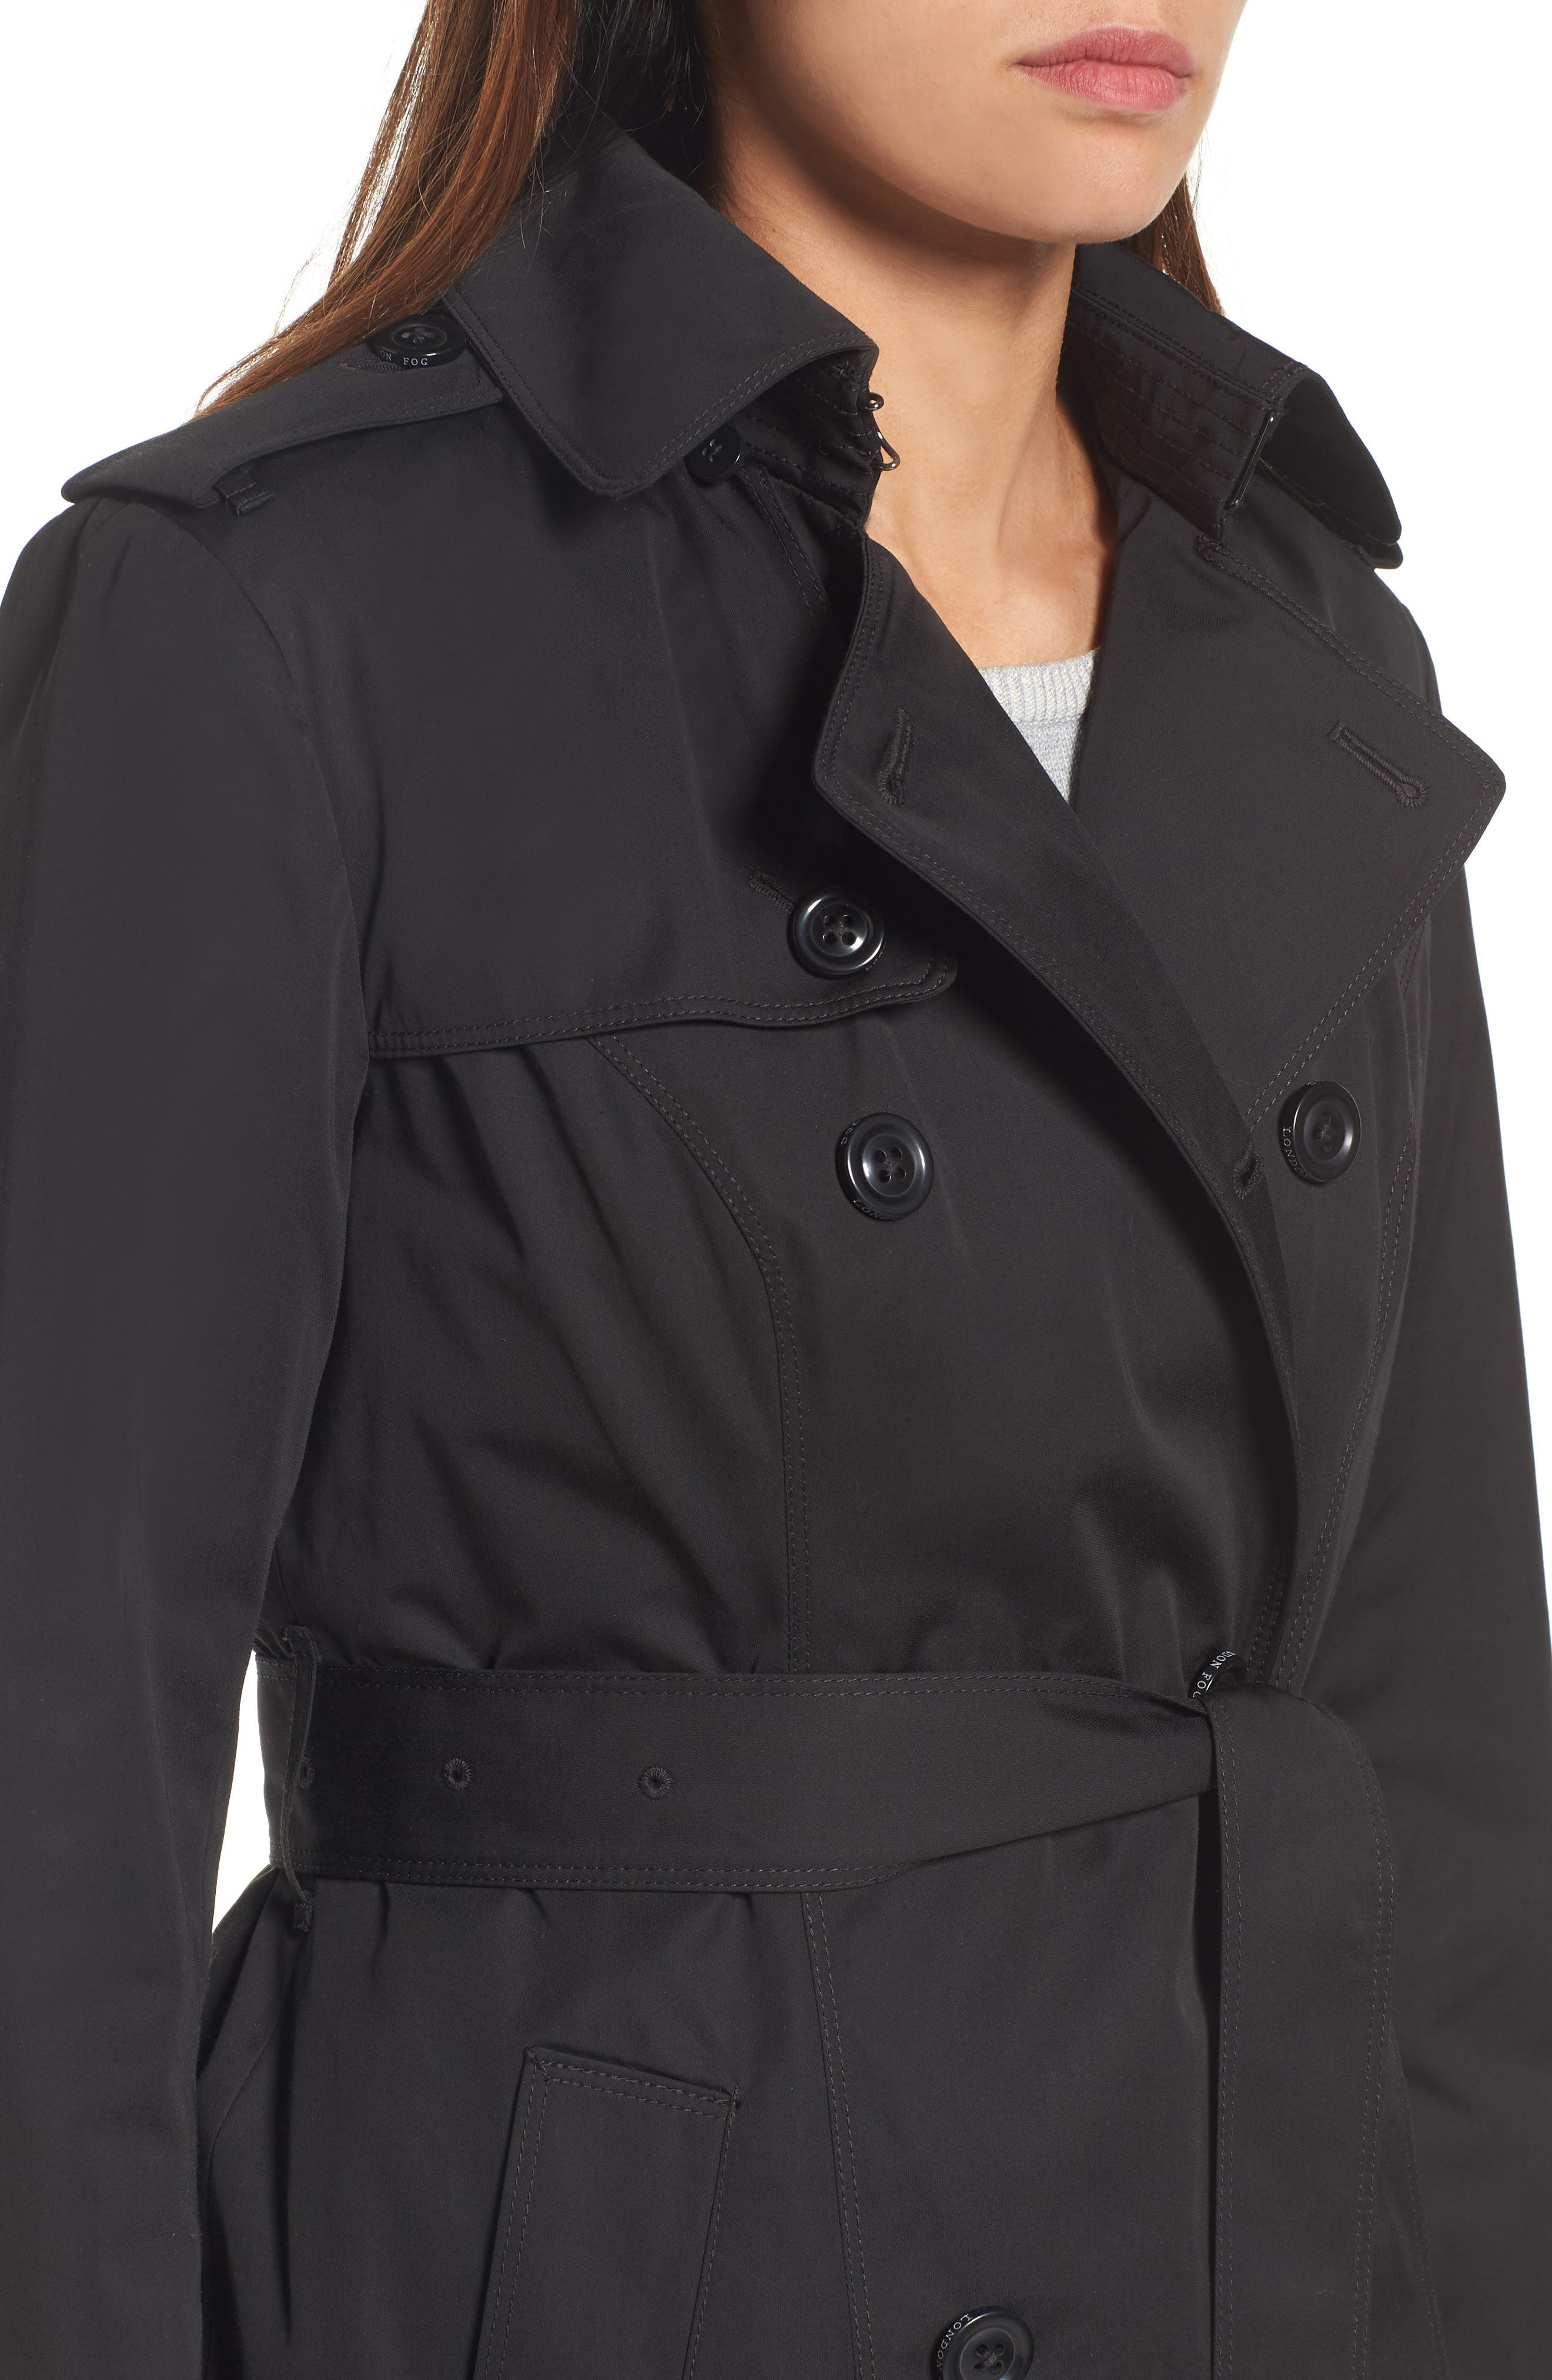 Heritage Trench Coat with Detachable Liner,                             Alternate thumbnail 4, color,                             001